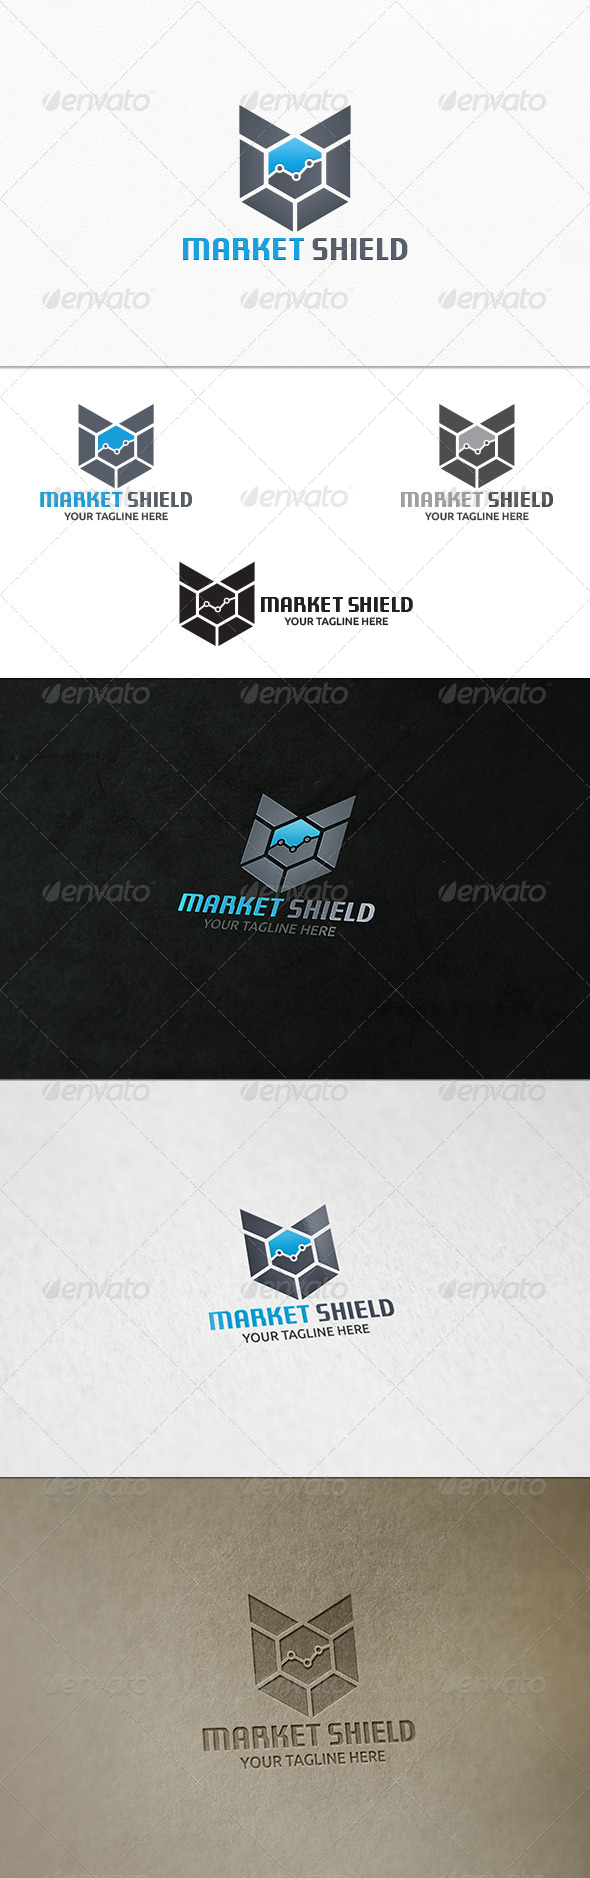 GraphicRiver Market Shield Logo Template 7905838